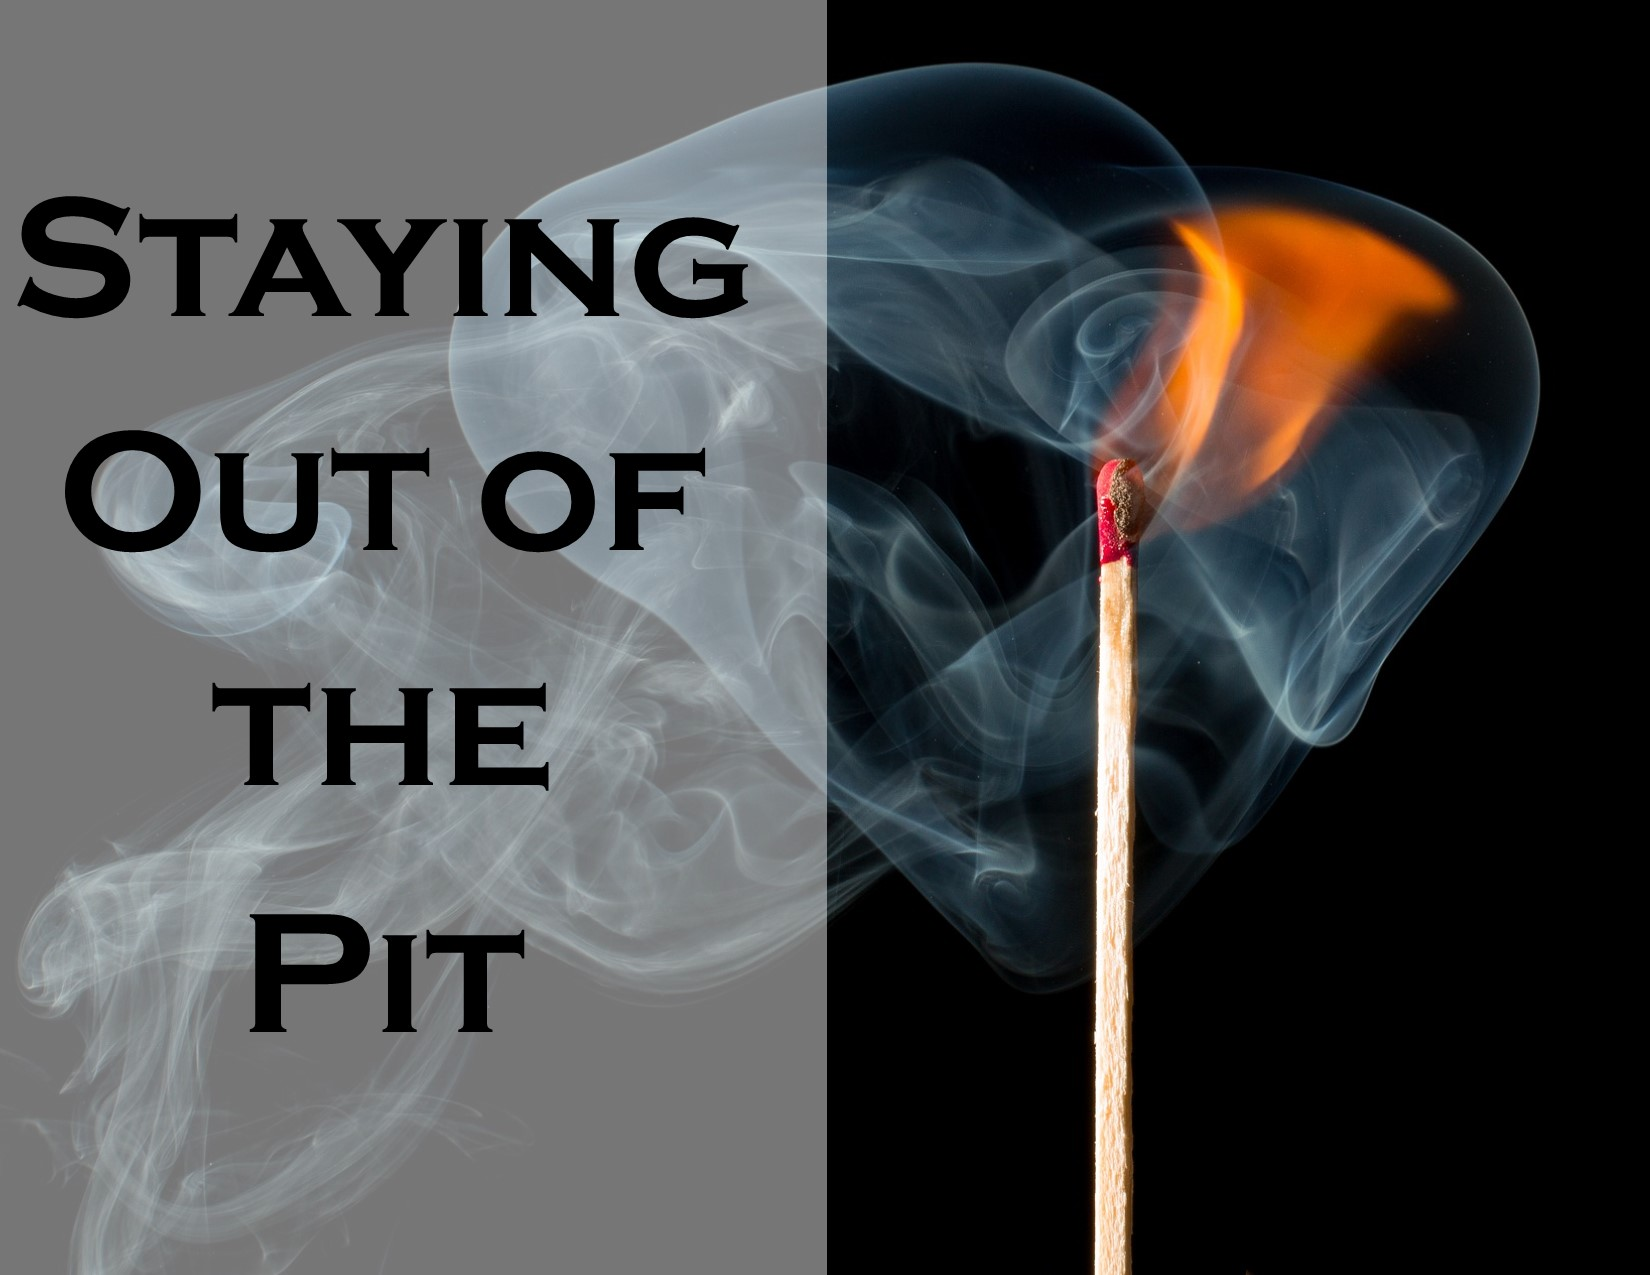 Staying Out of the Pit